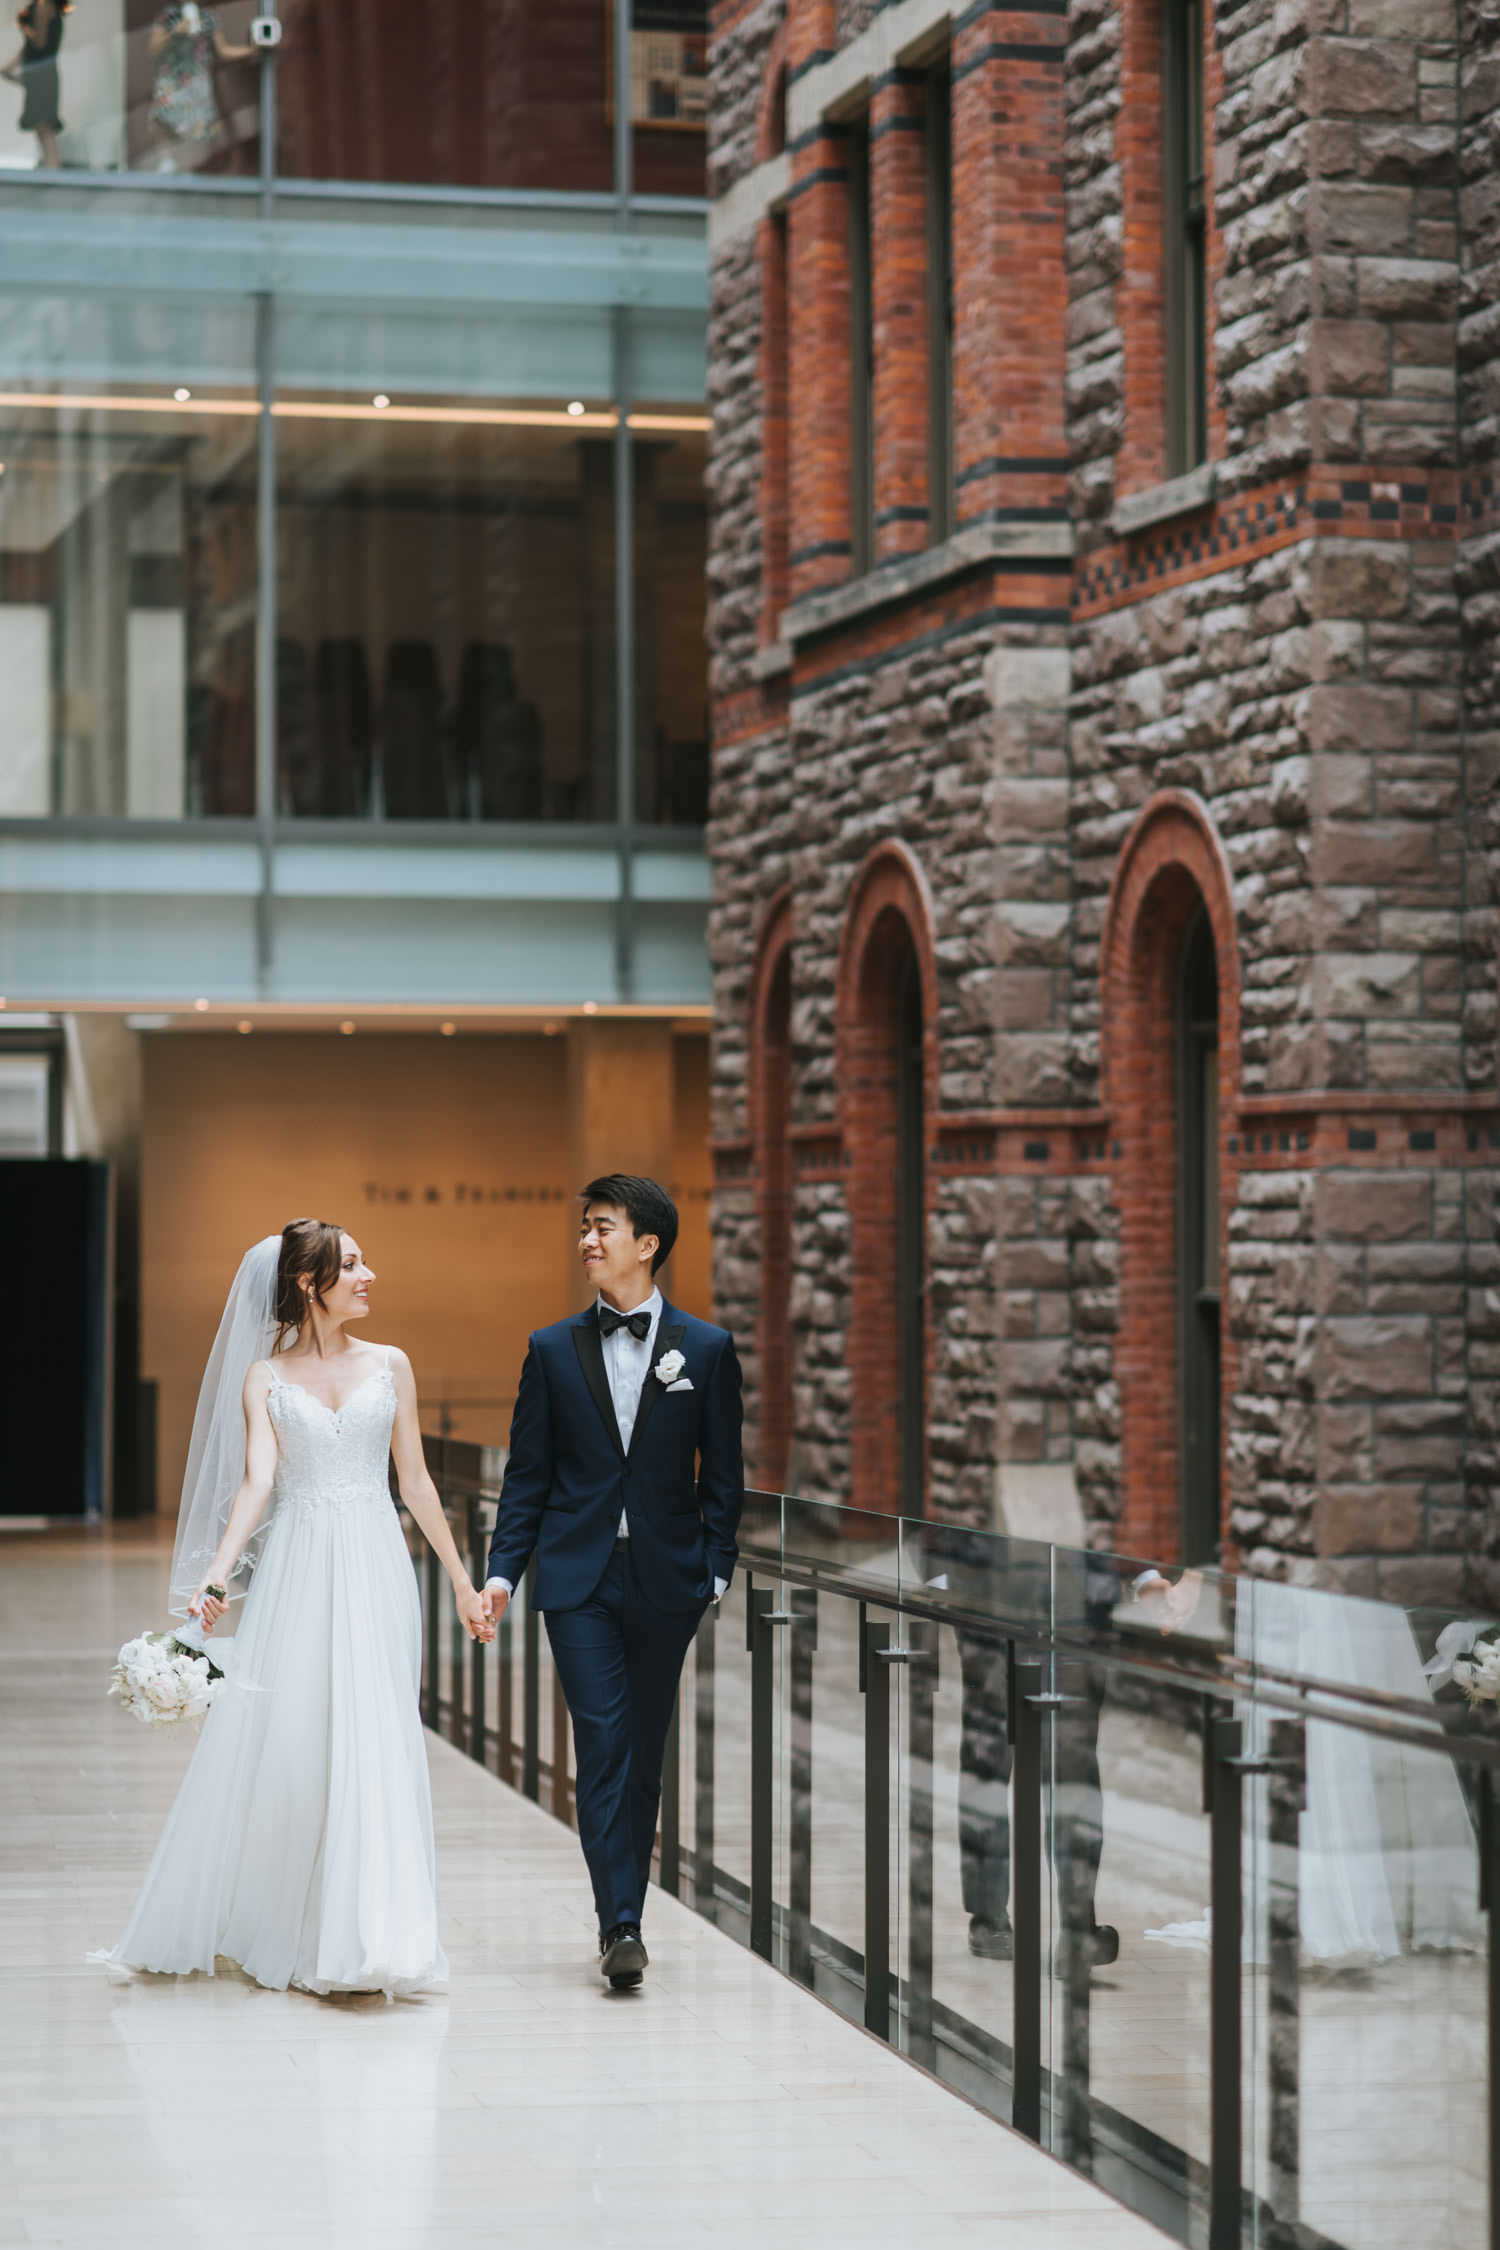 Toronto Royal Conservatory of Music Wedding Photo